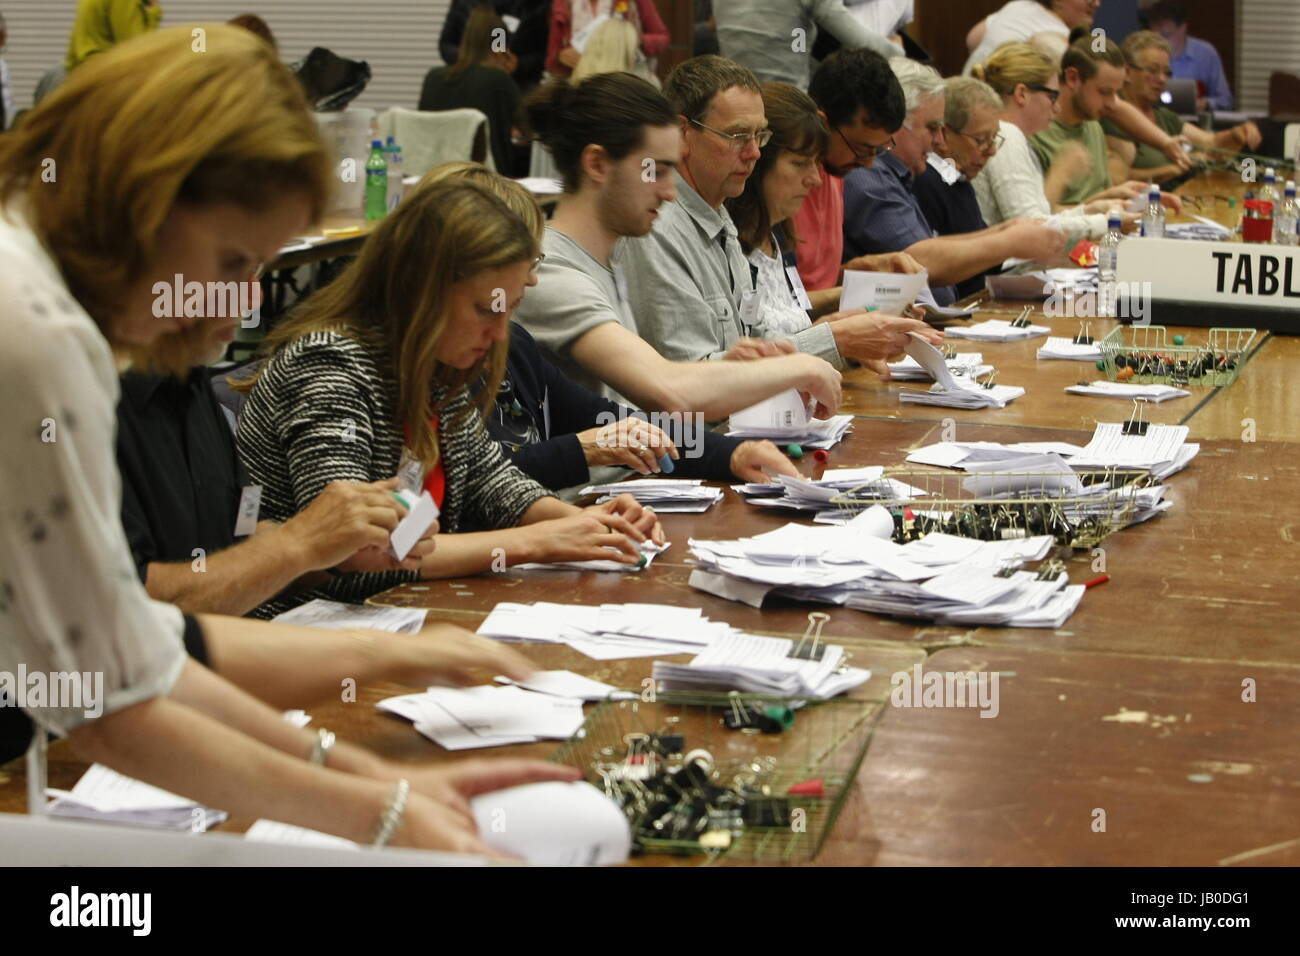 General Election vote counting at Epsom and Ewell costituency, Surrey, UK  2017 - Stock Image